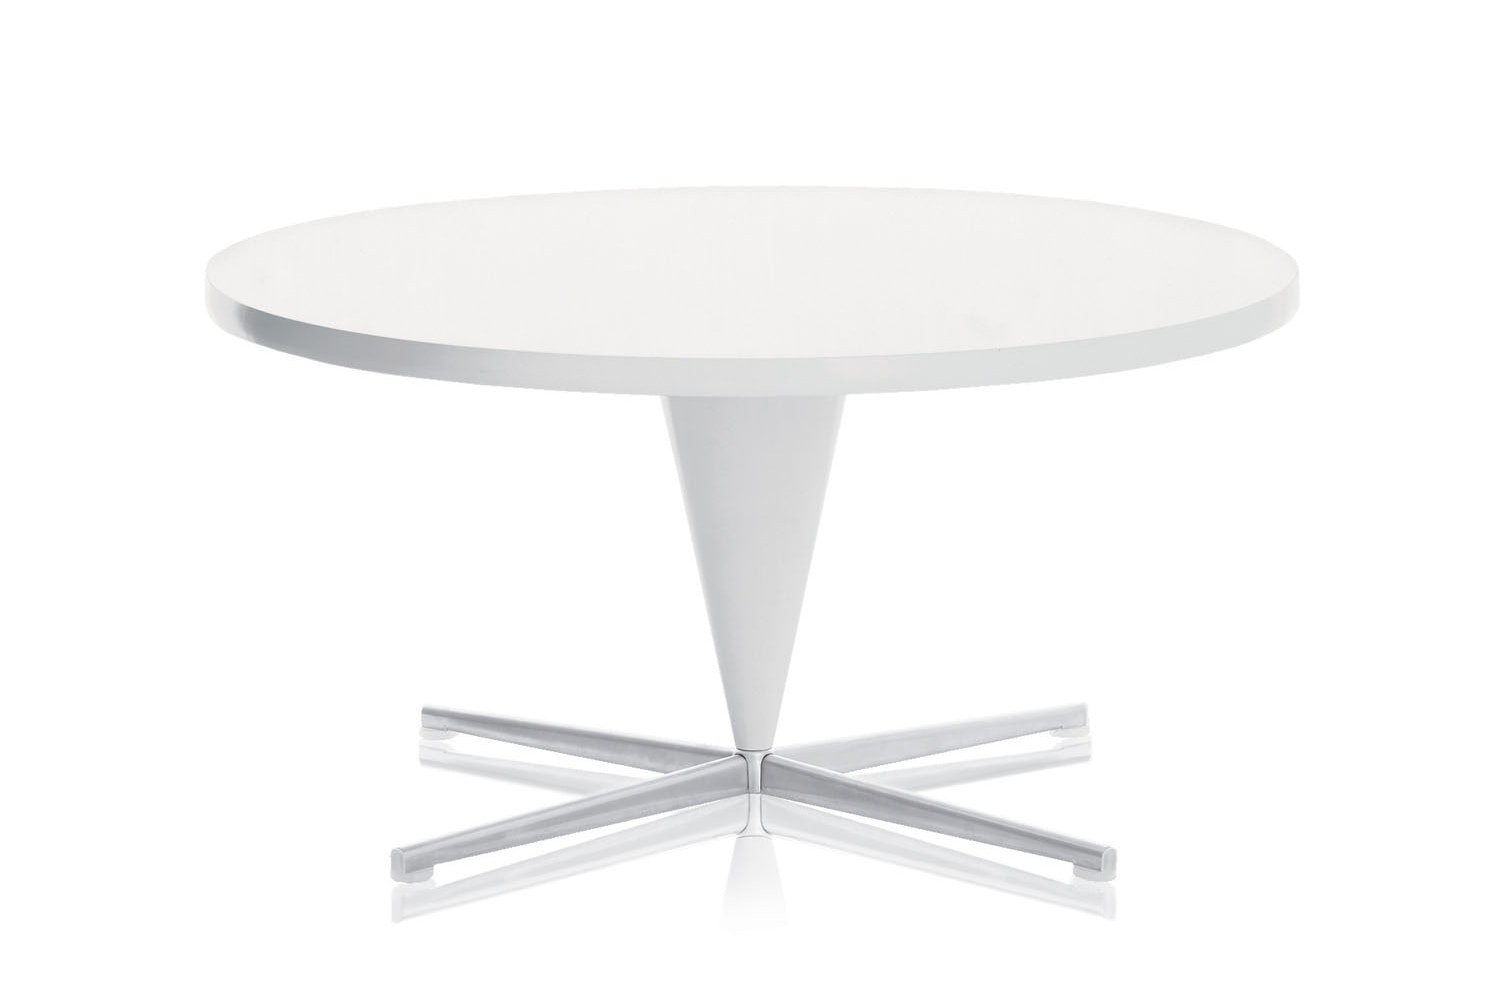 Cone Table by Verner Panton for Vitra